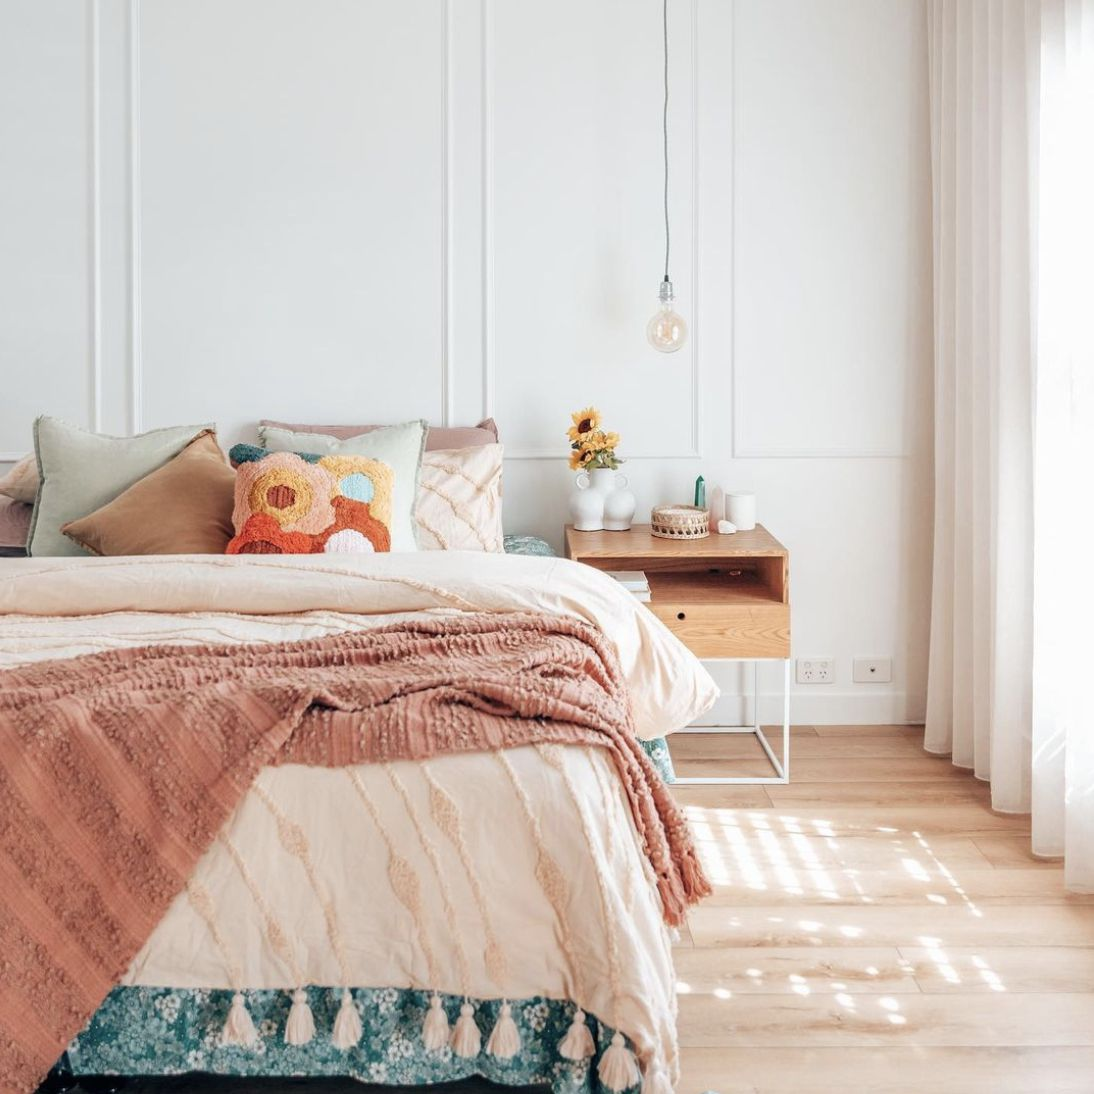 bedroom with different textures and layer of pink blankets